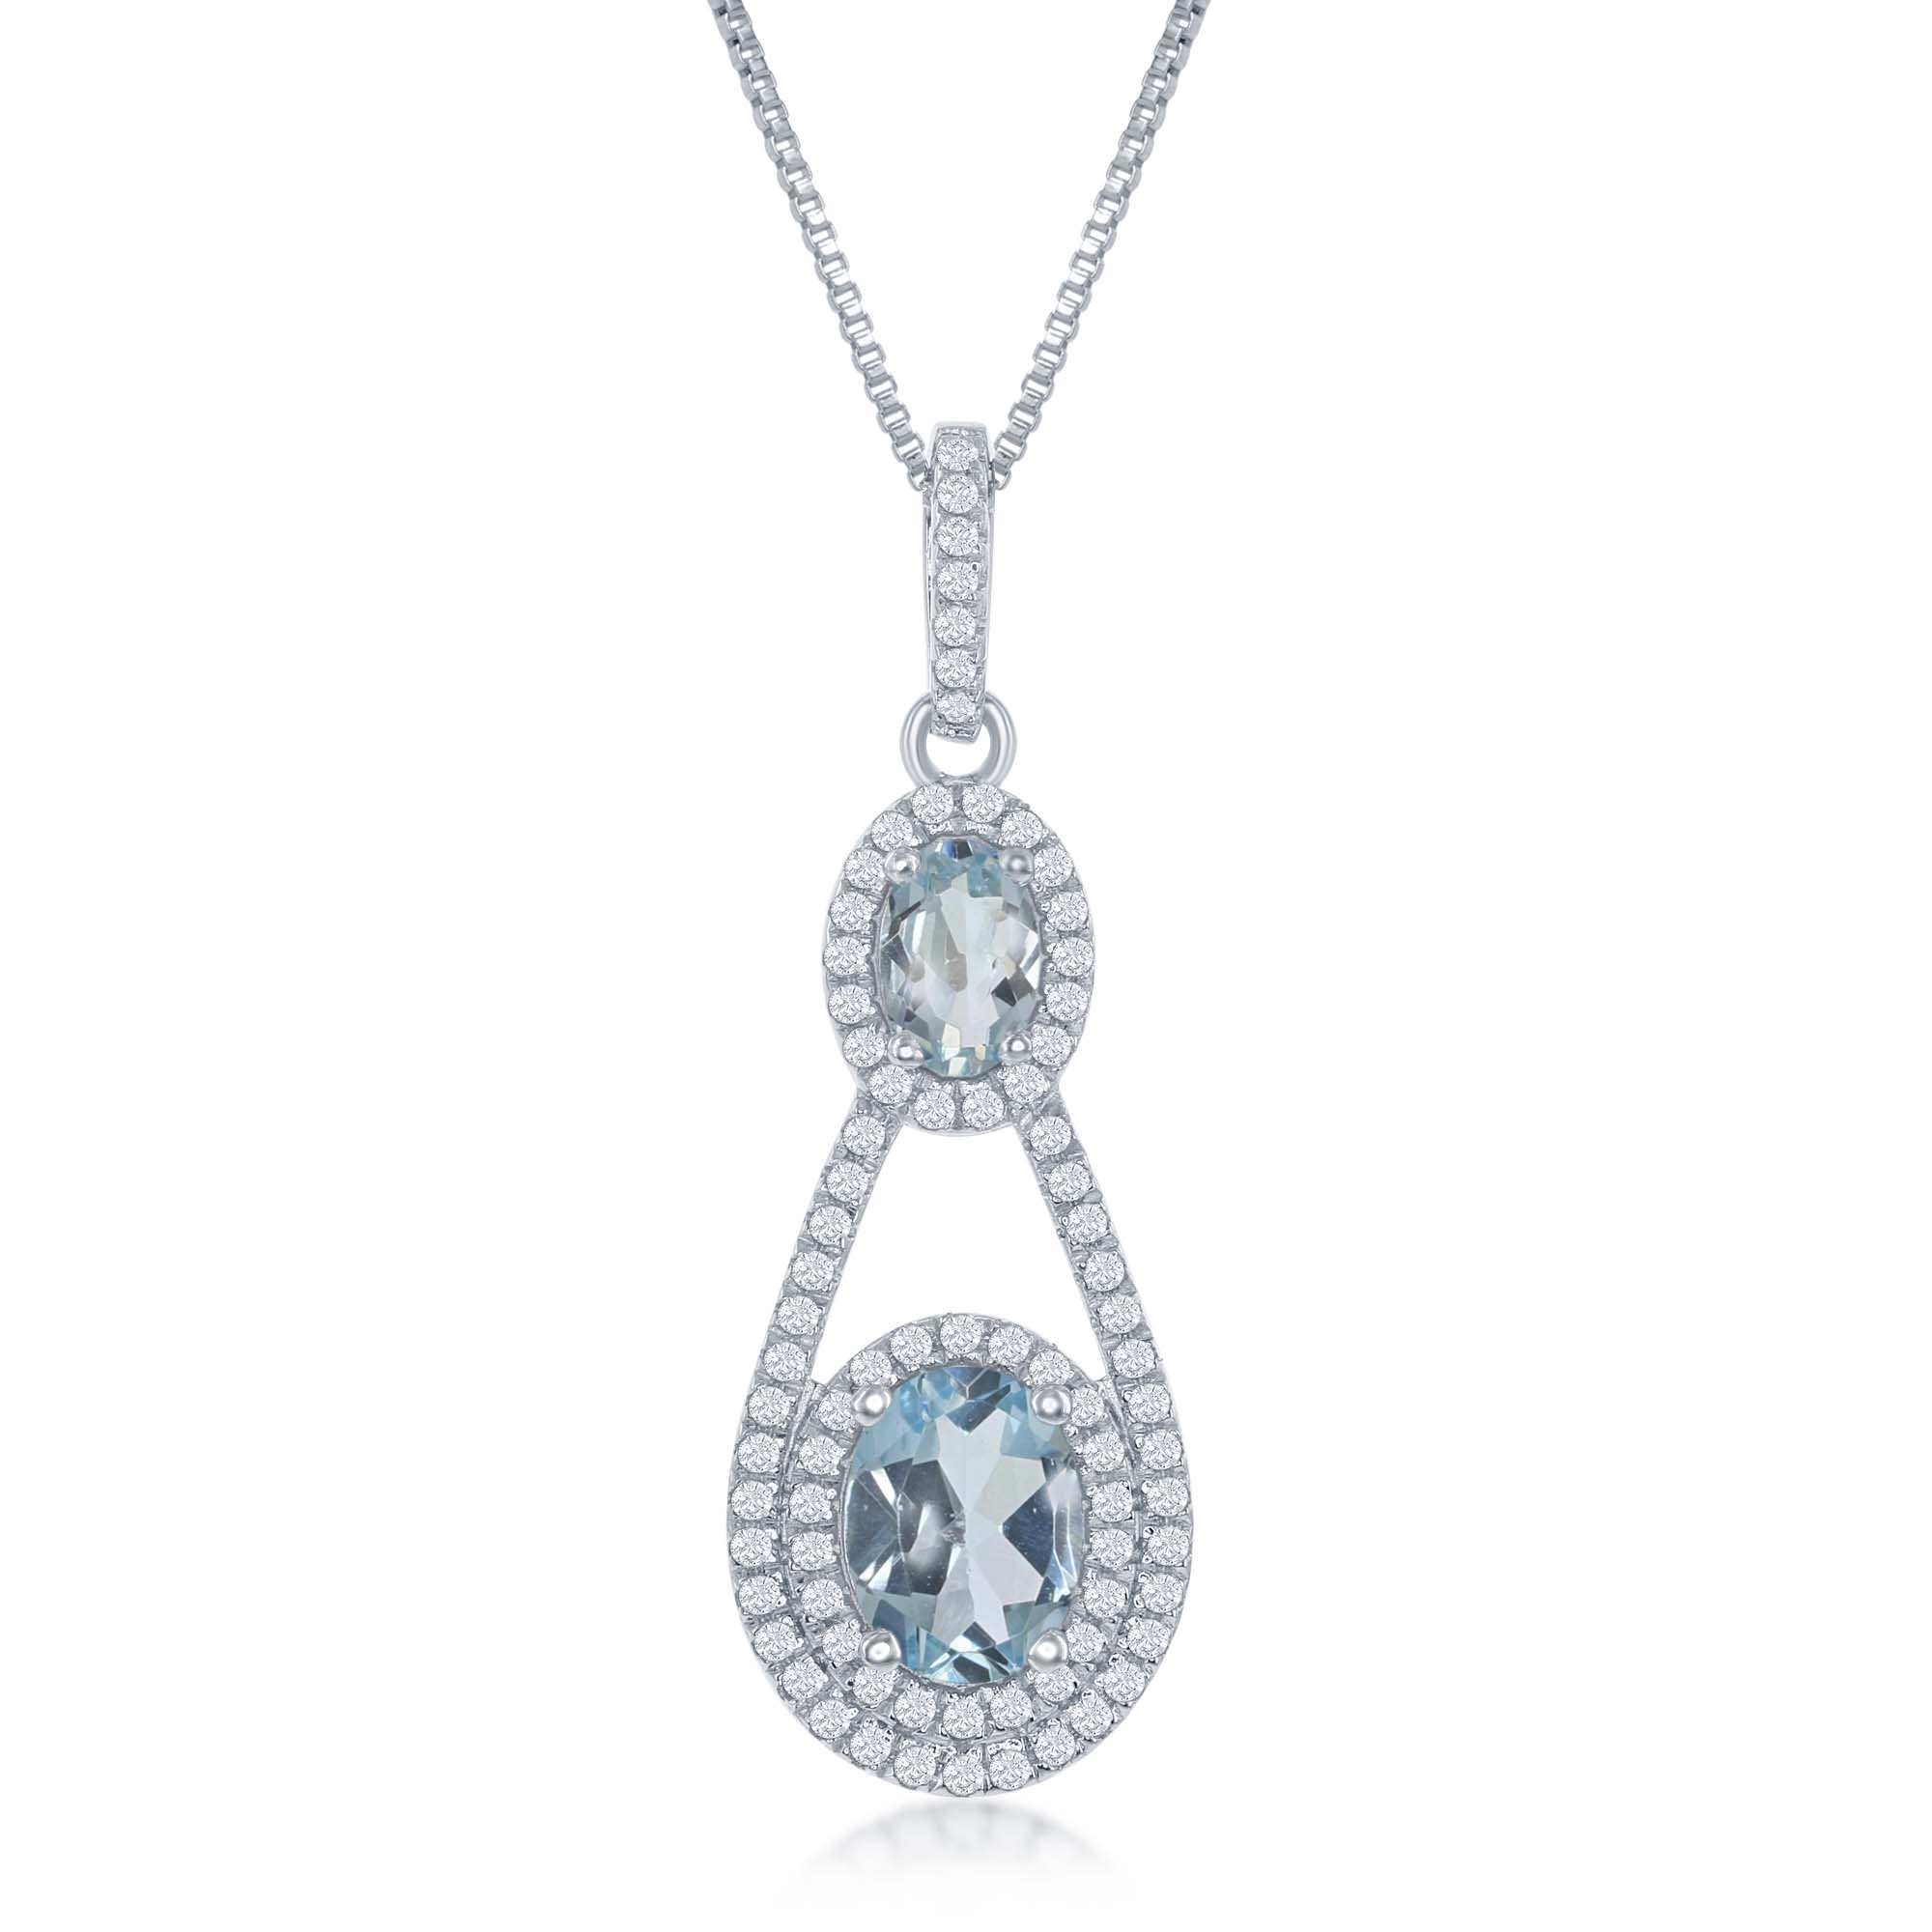 Sterling Silver High Polish Double Oval Blue Topaz with White Topaz Border 17+3'' Necklace by Beaux Bijoux